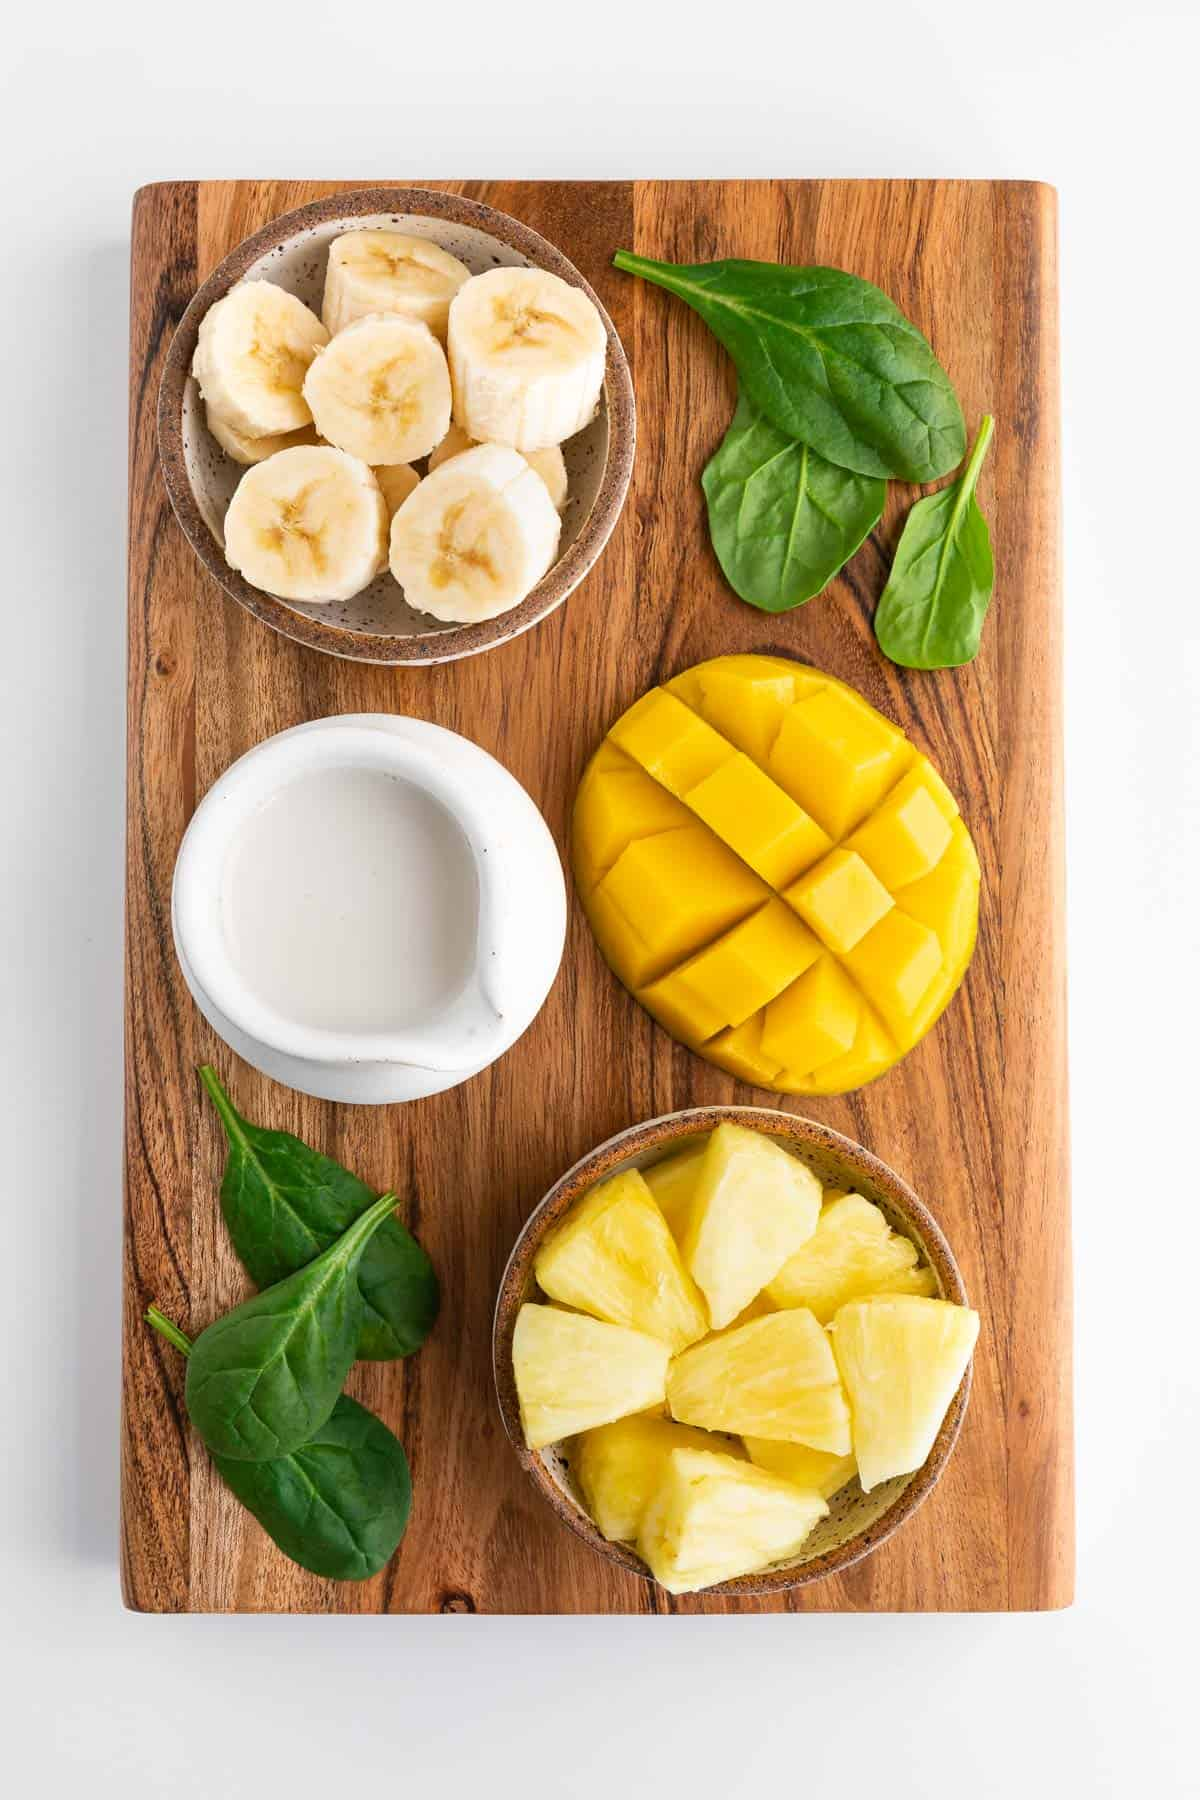 a dark wood rectangular board with a sliced mango, bowl of chopped banana, bowl of pineapple chunks, glass of almond milk, and fresh spinach on top